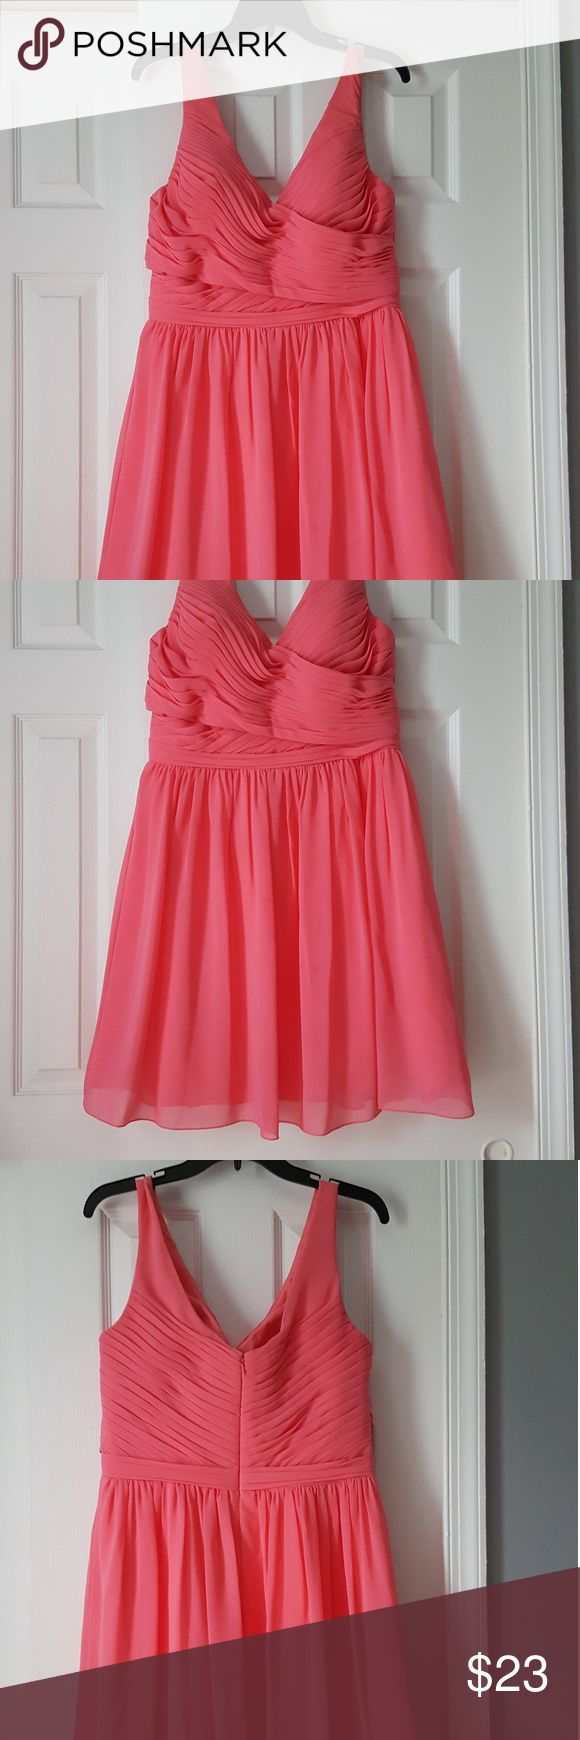 Beautiful summer event dress This pink coral cocktail dress is perfect for your summer event. The gathered fabric around the bust gives way to a flowing skirt and is very flattering. Says 14 but fits lime a 12. Bill Levkoff Dresses